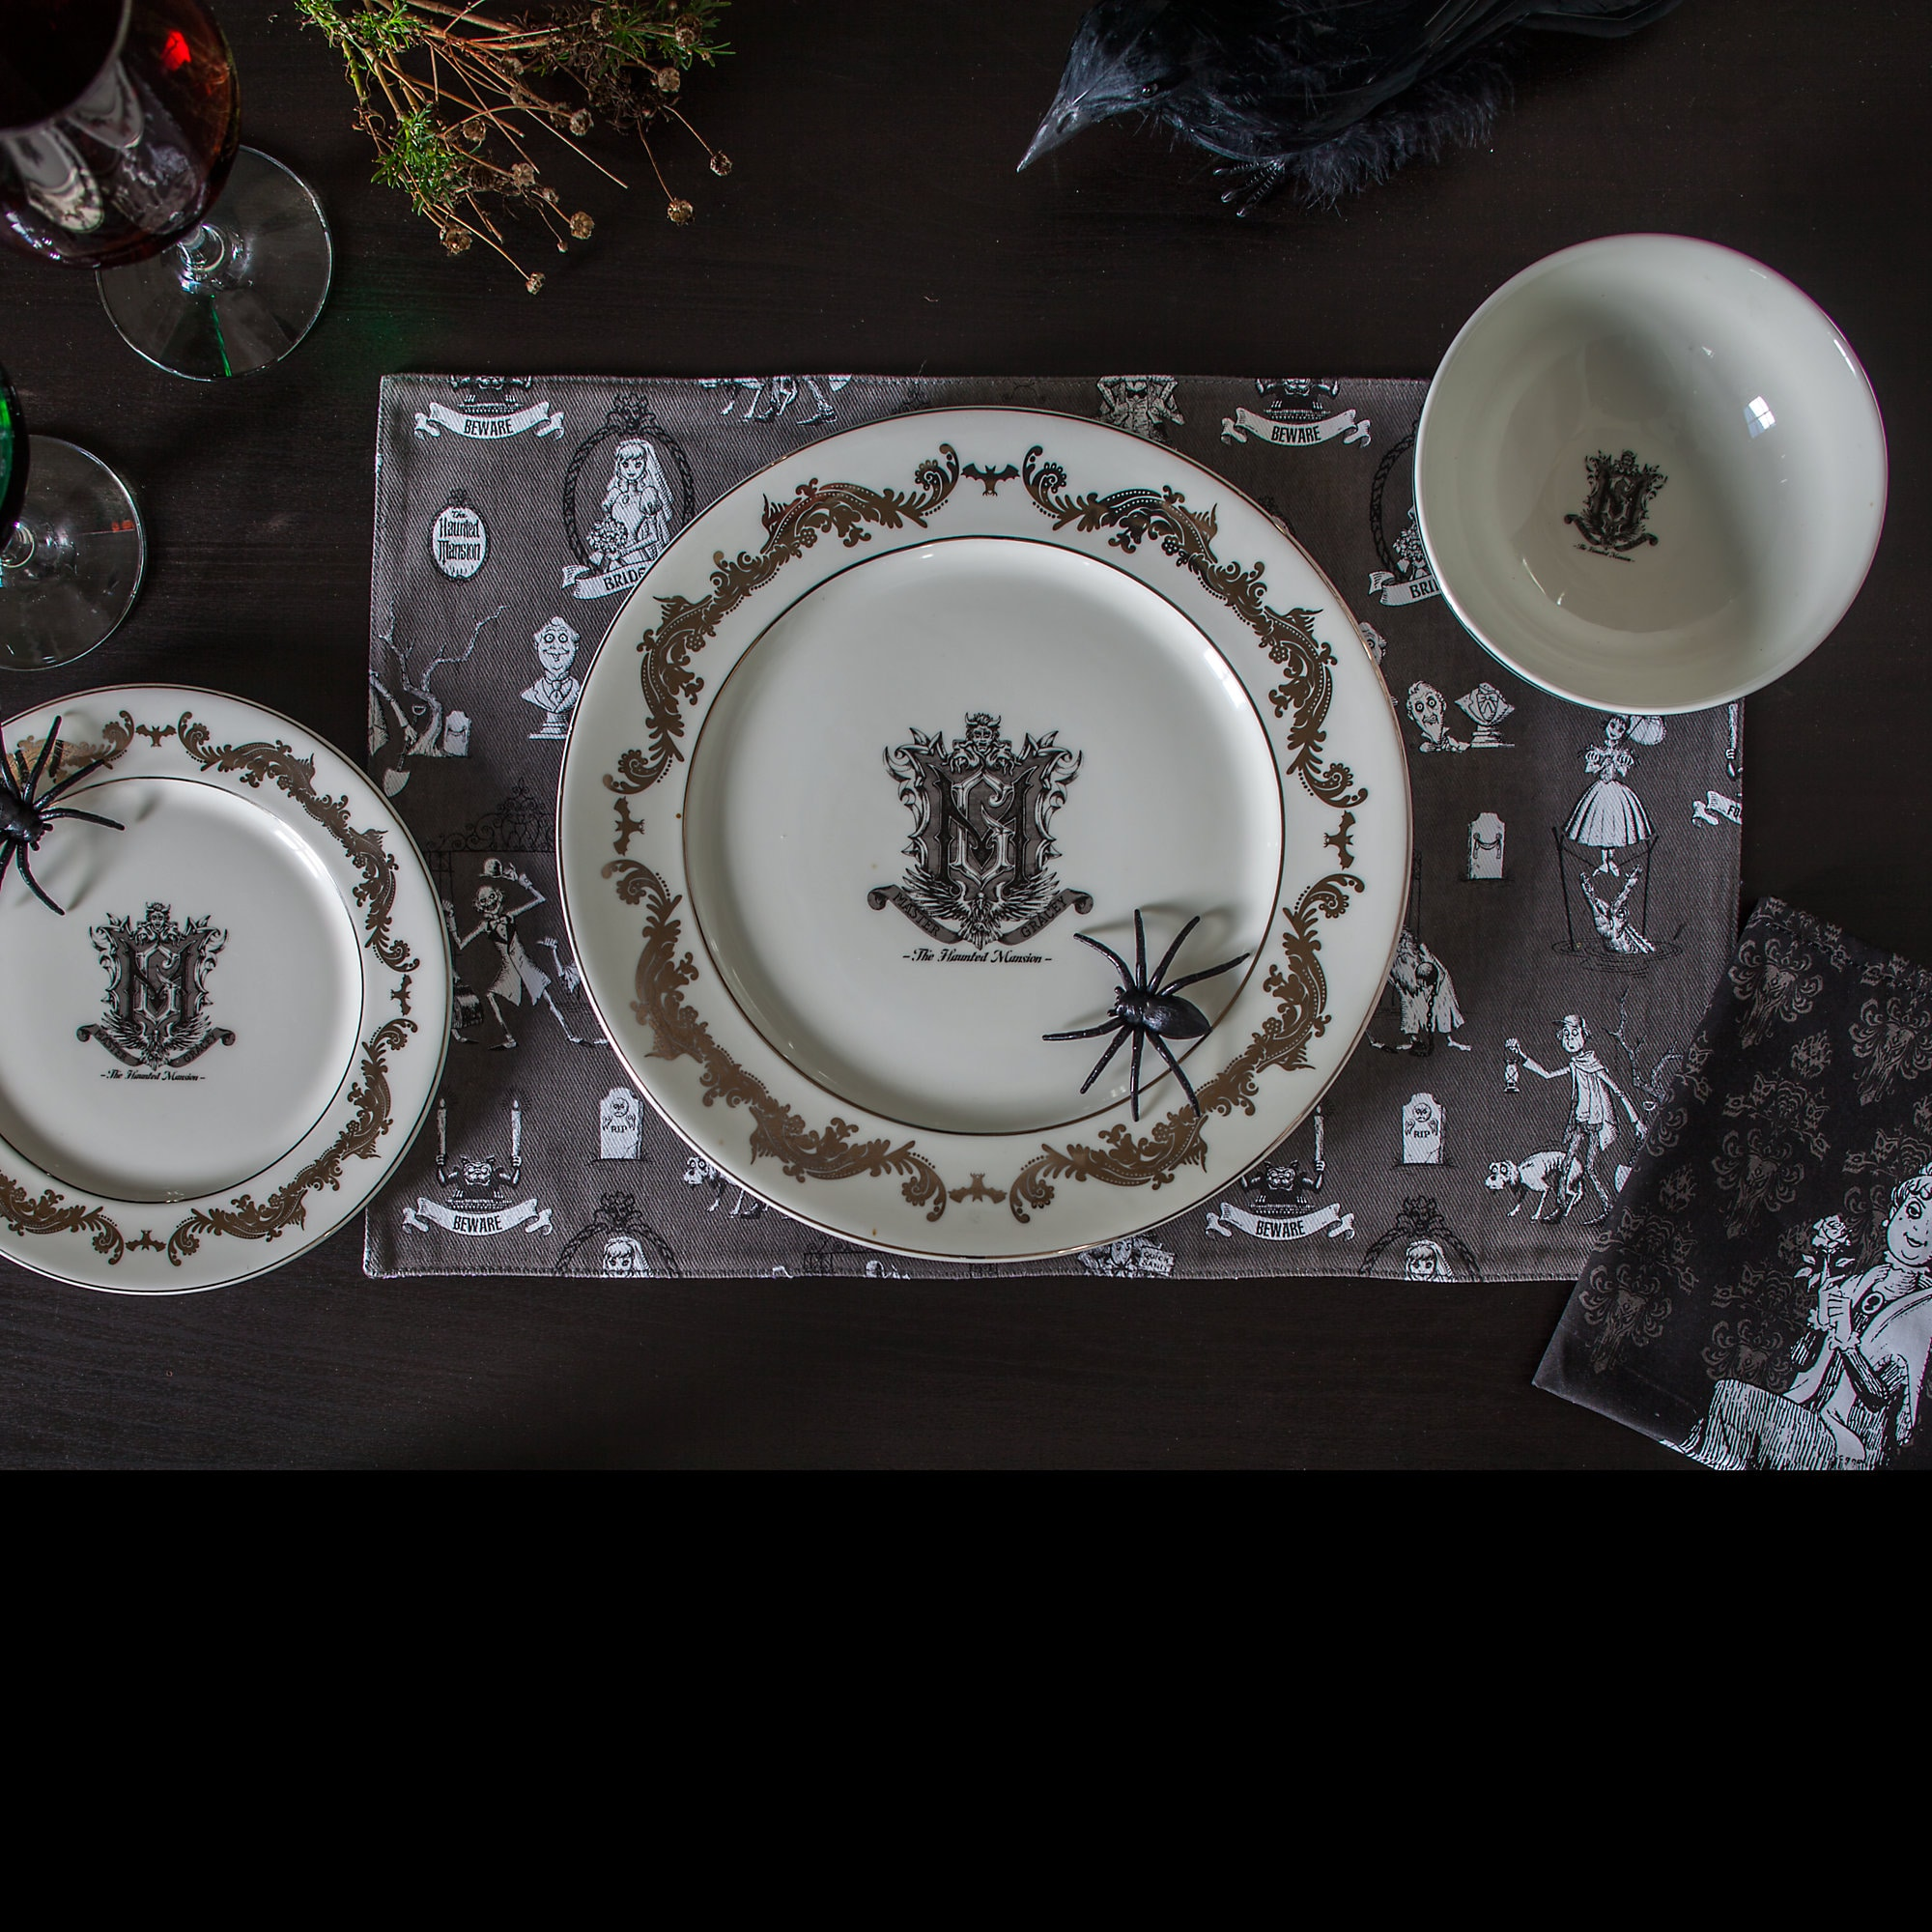 Thumbnail Image of The Haunted Mansion Porcelain Dinner Plate # 2 & The Haunted Mansion Porcelain Dinner Plate | shopDisney